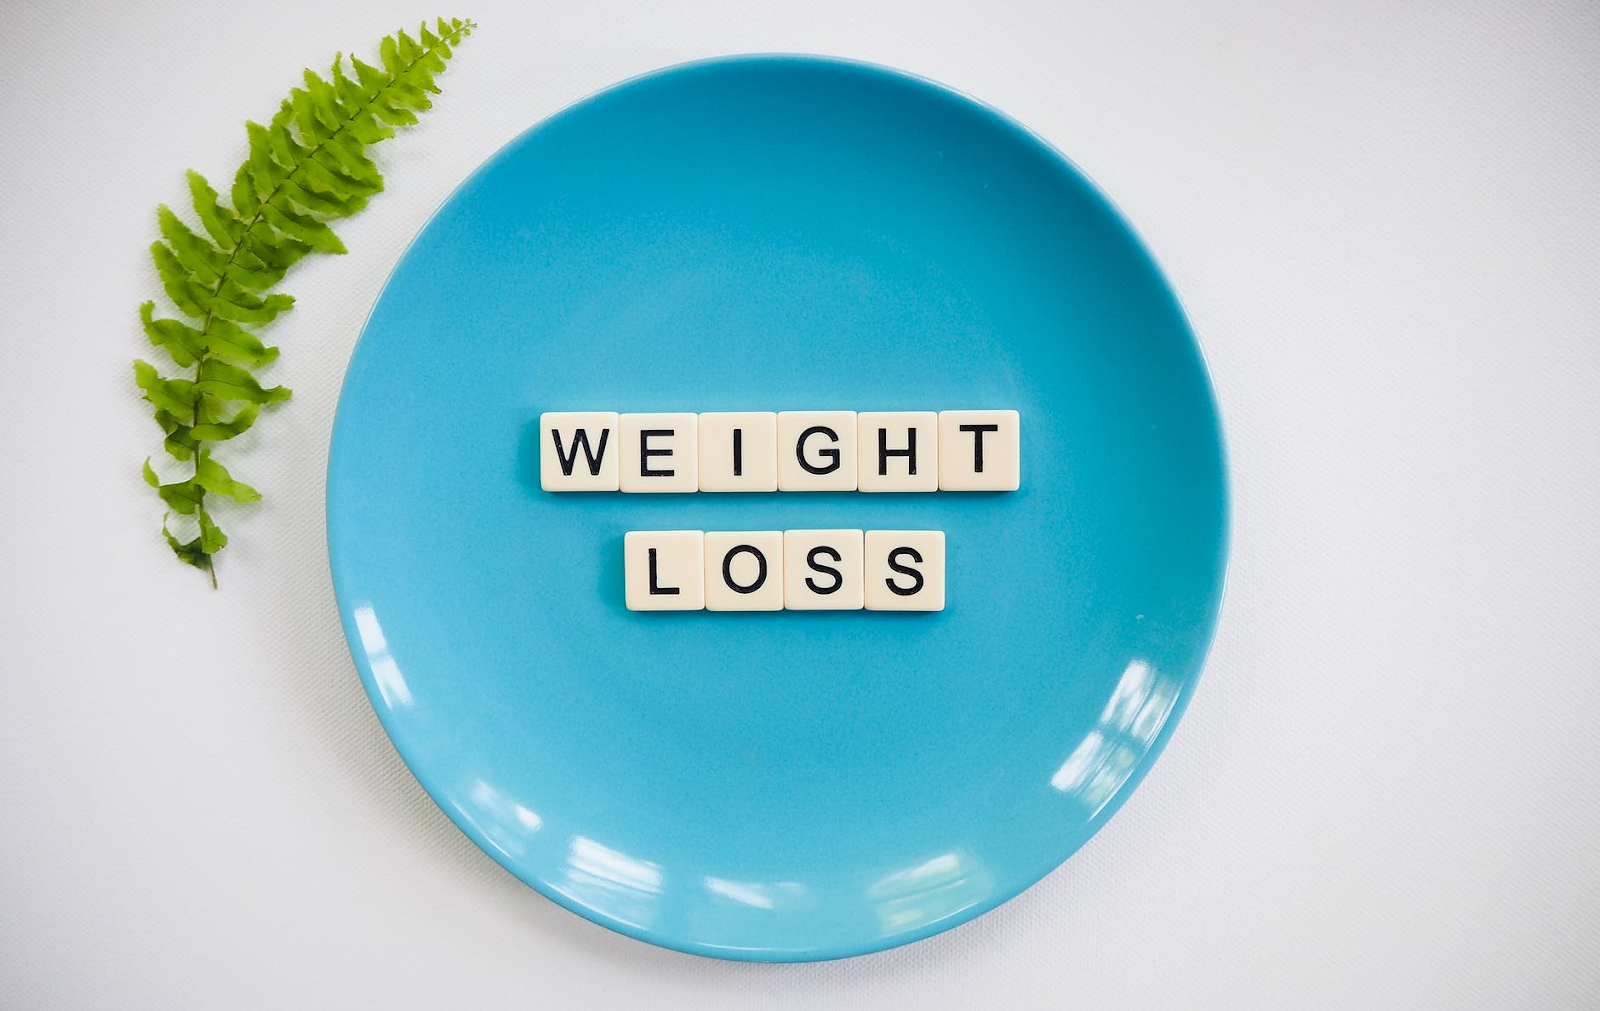 8 Tips for Losing Weight Without Fad Diets